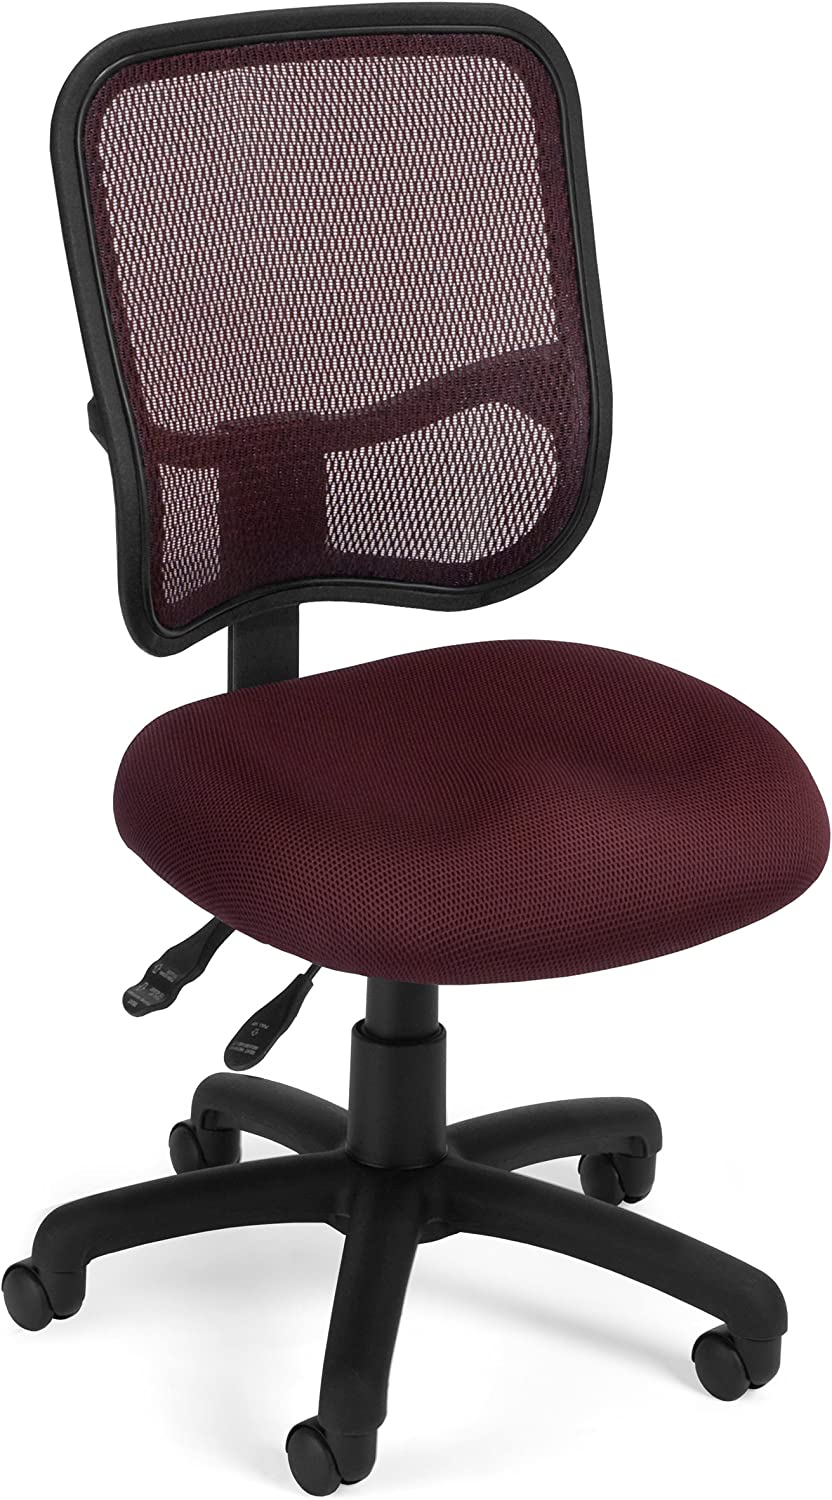 OFM Core Collection Comfort Series Ergonomic Mesh Mid Back Armless Task Chair, in Wine